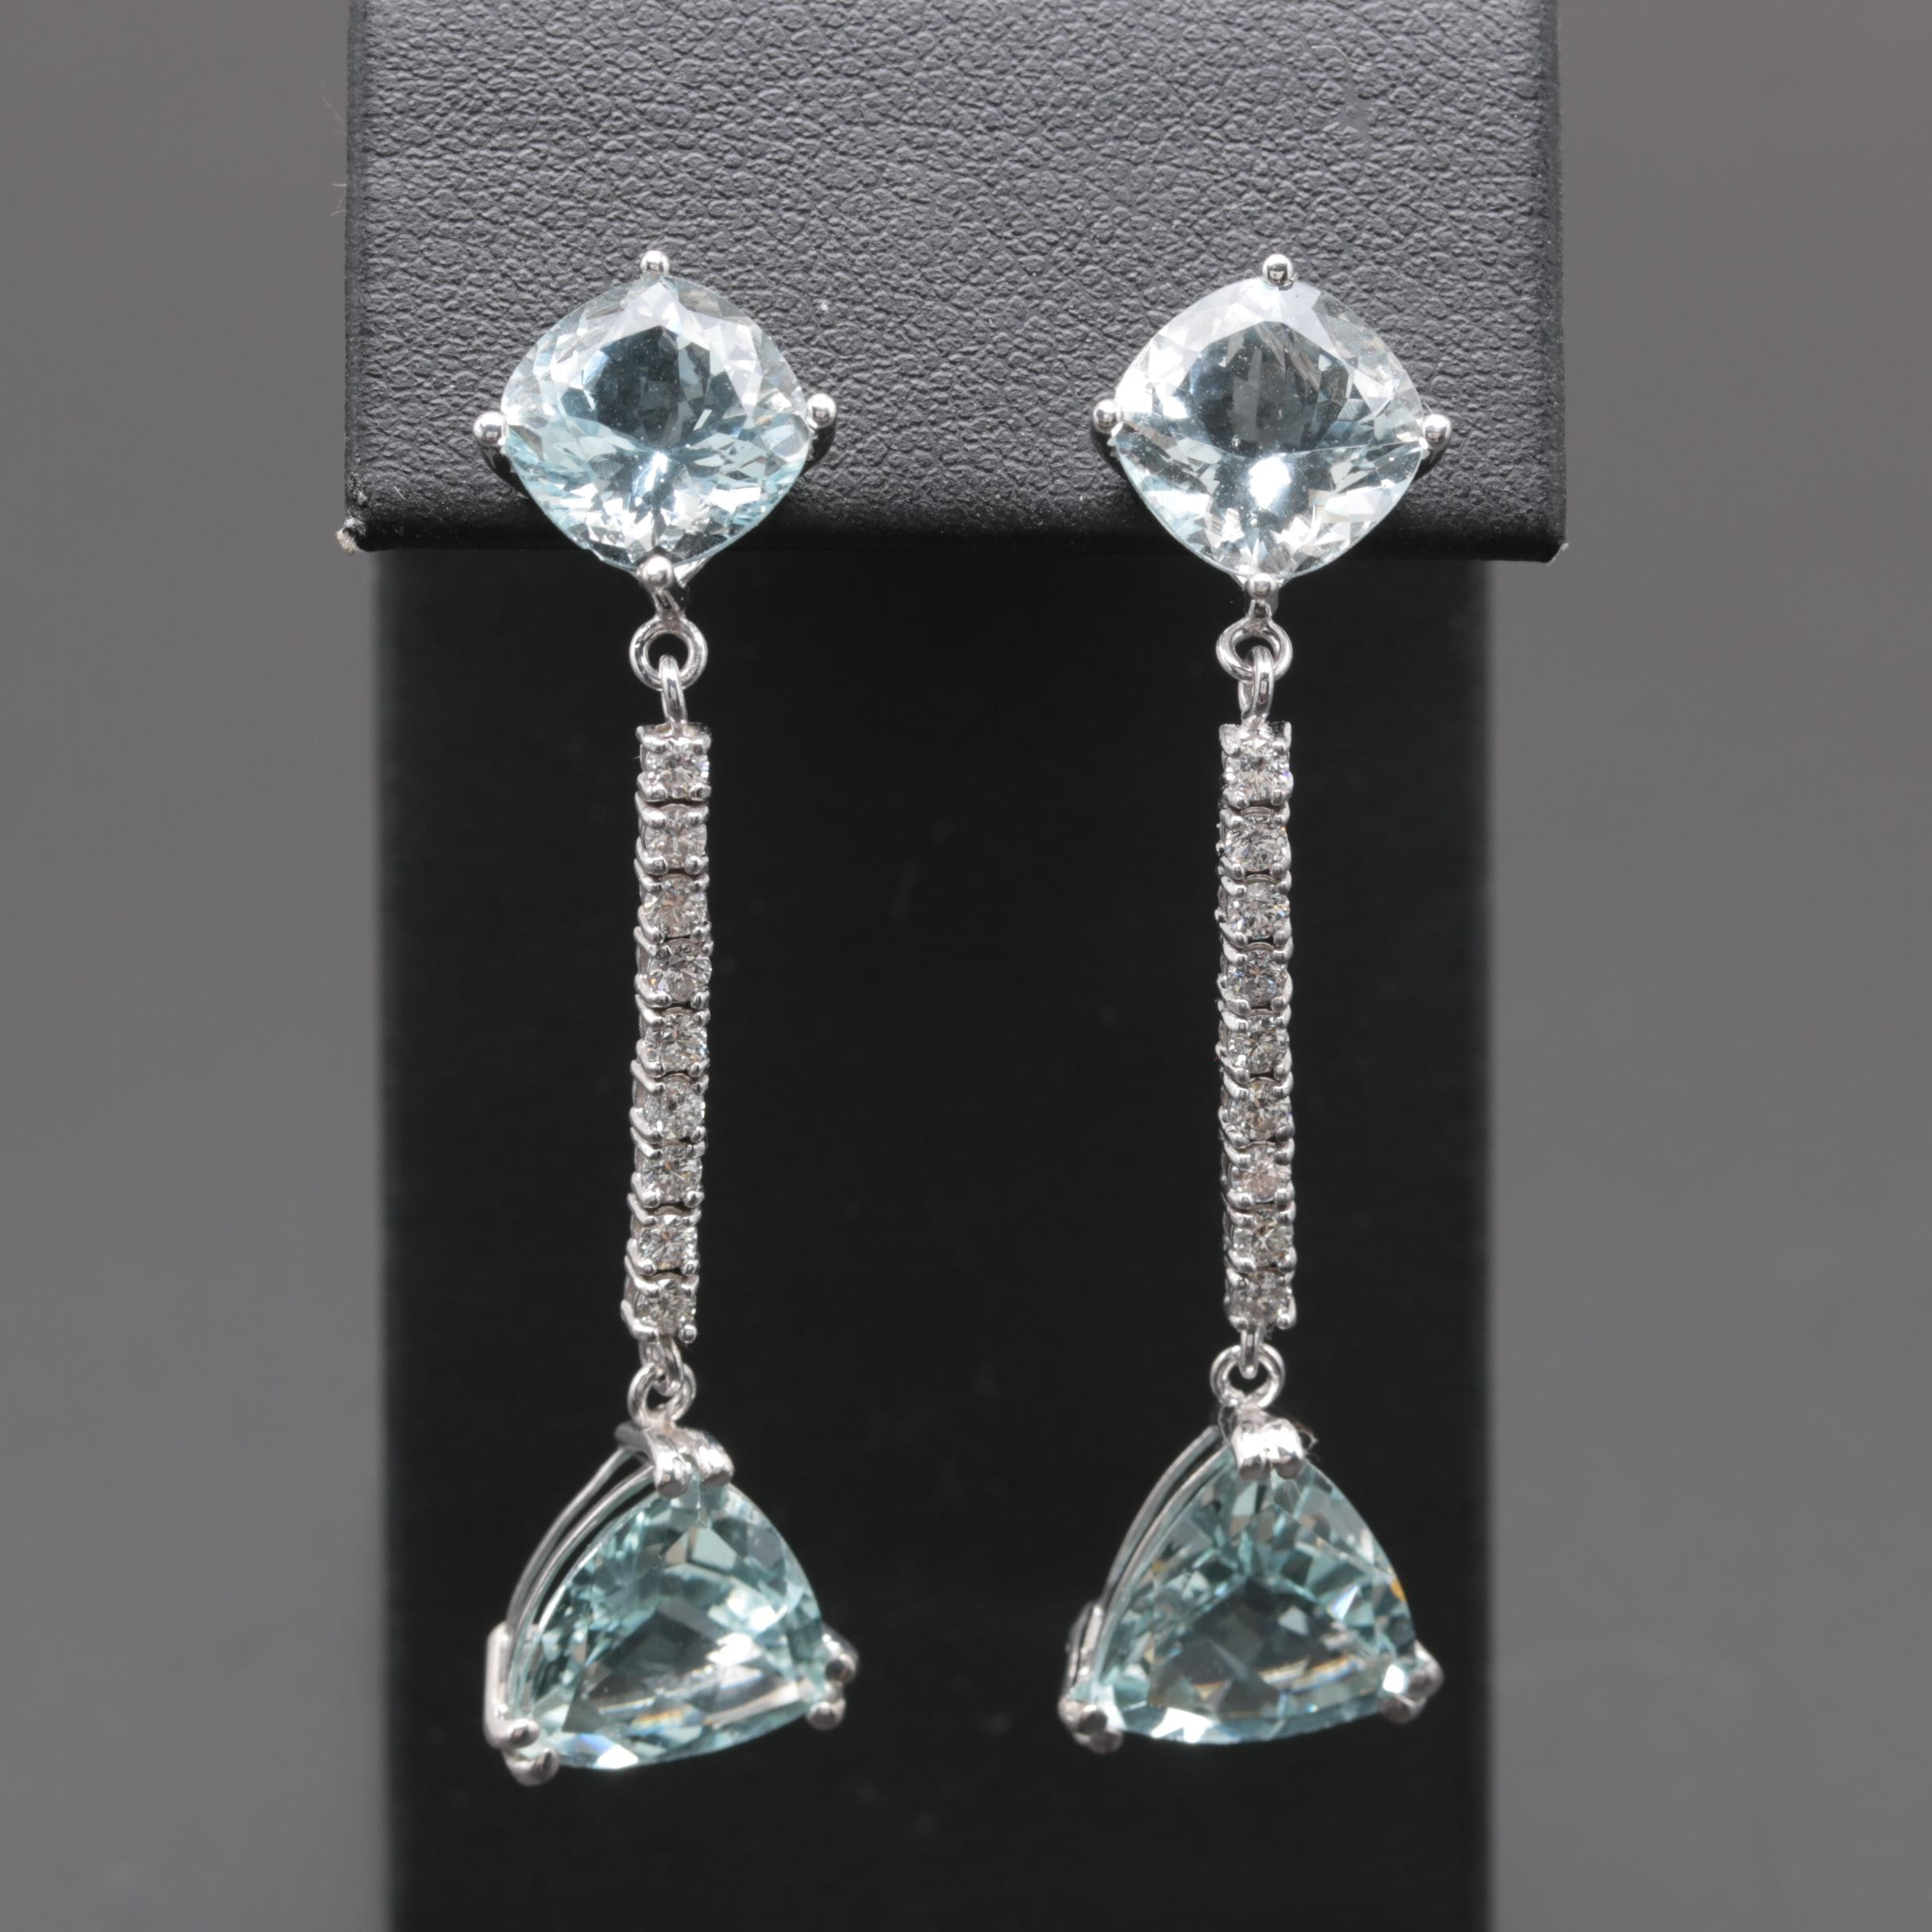 14K White Gold Aquamarine and Diamond Drop Earrings